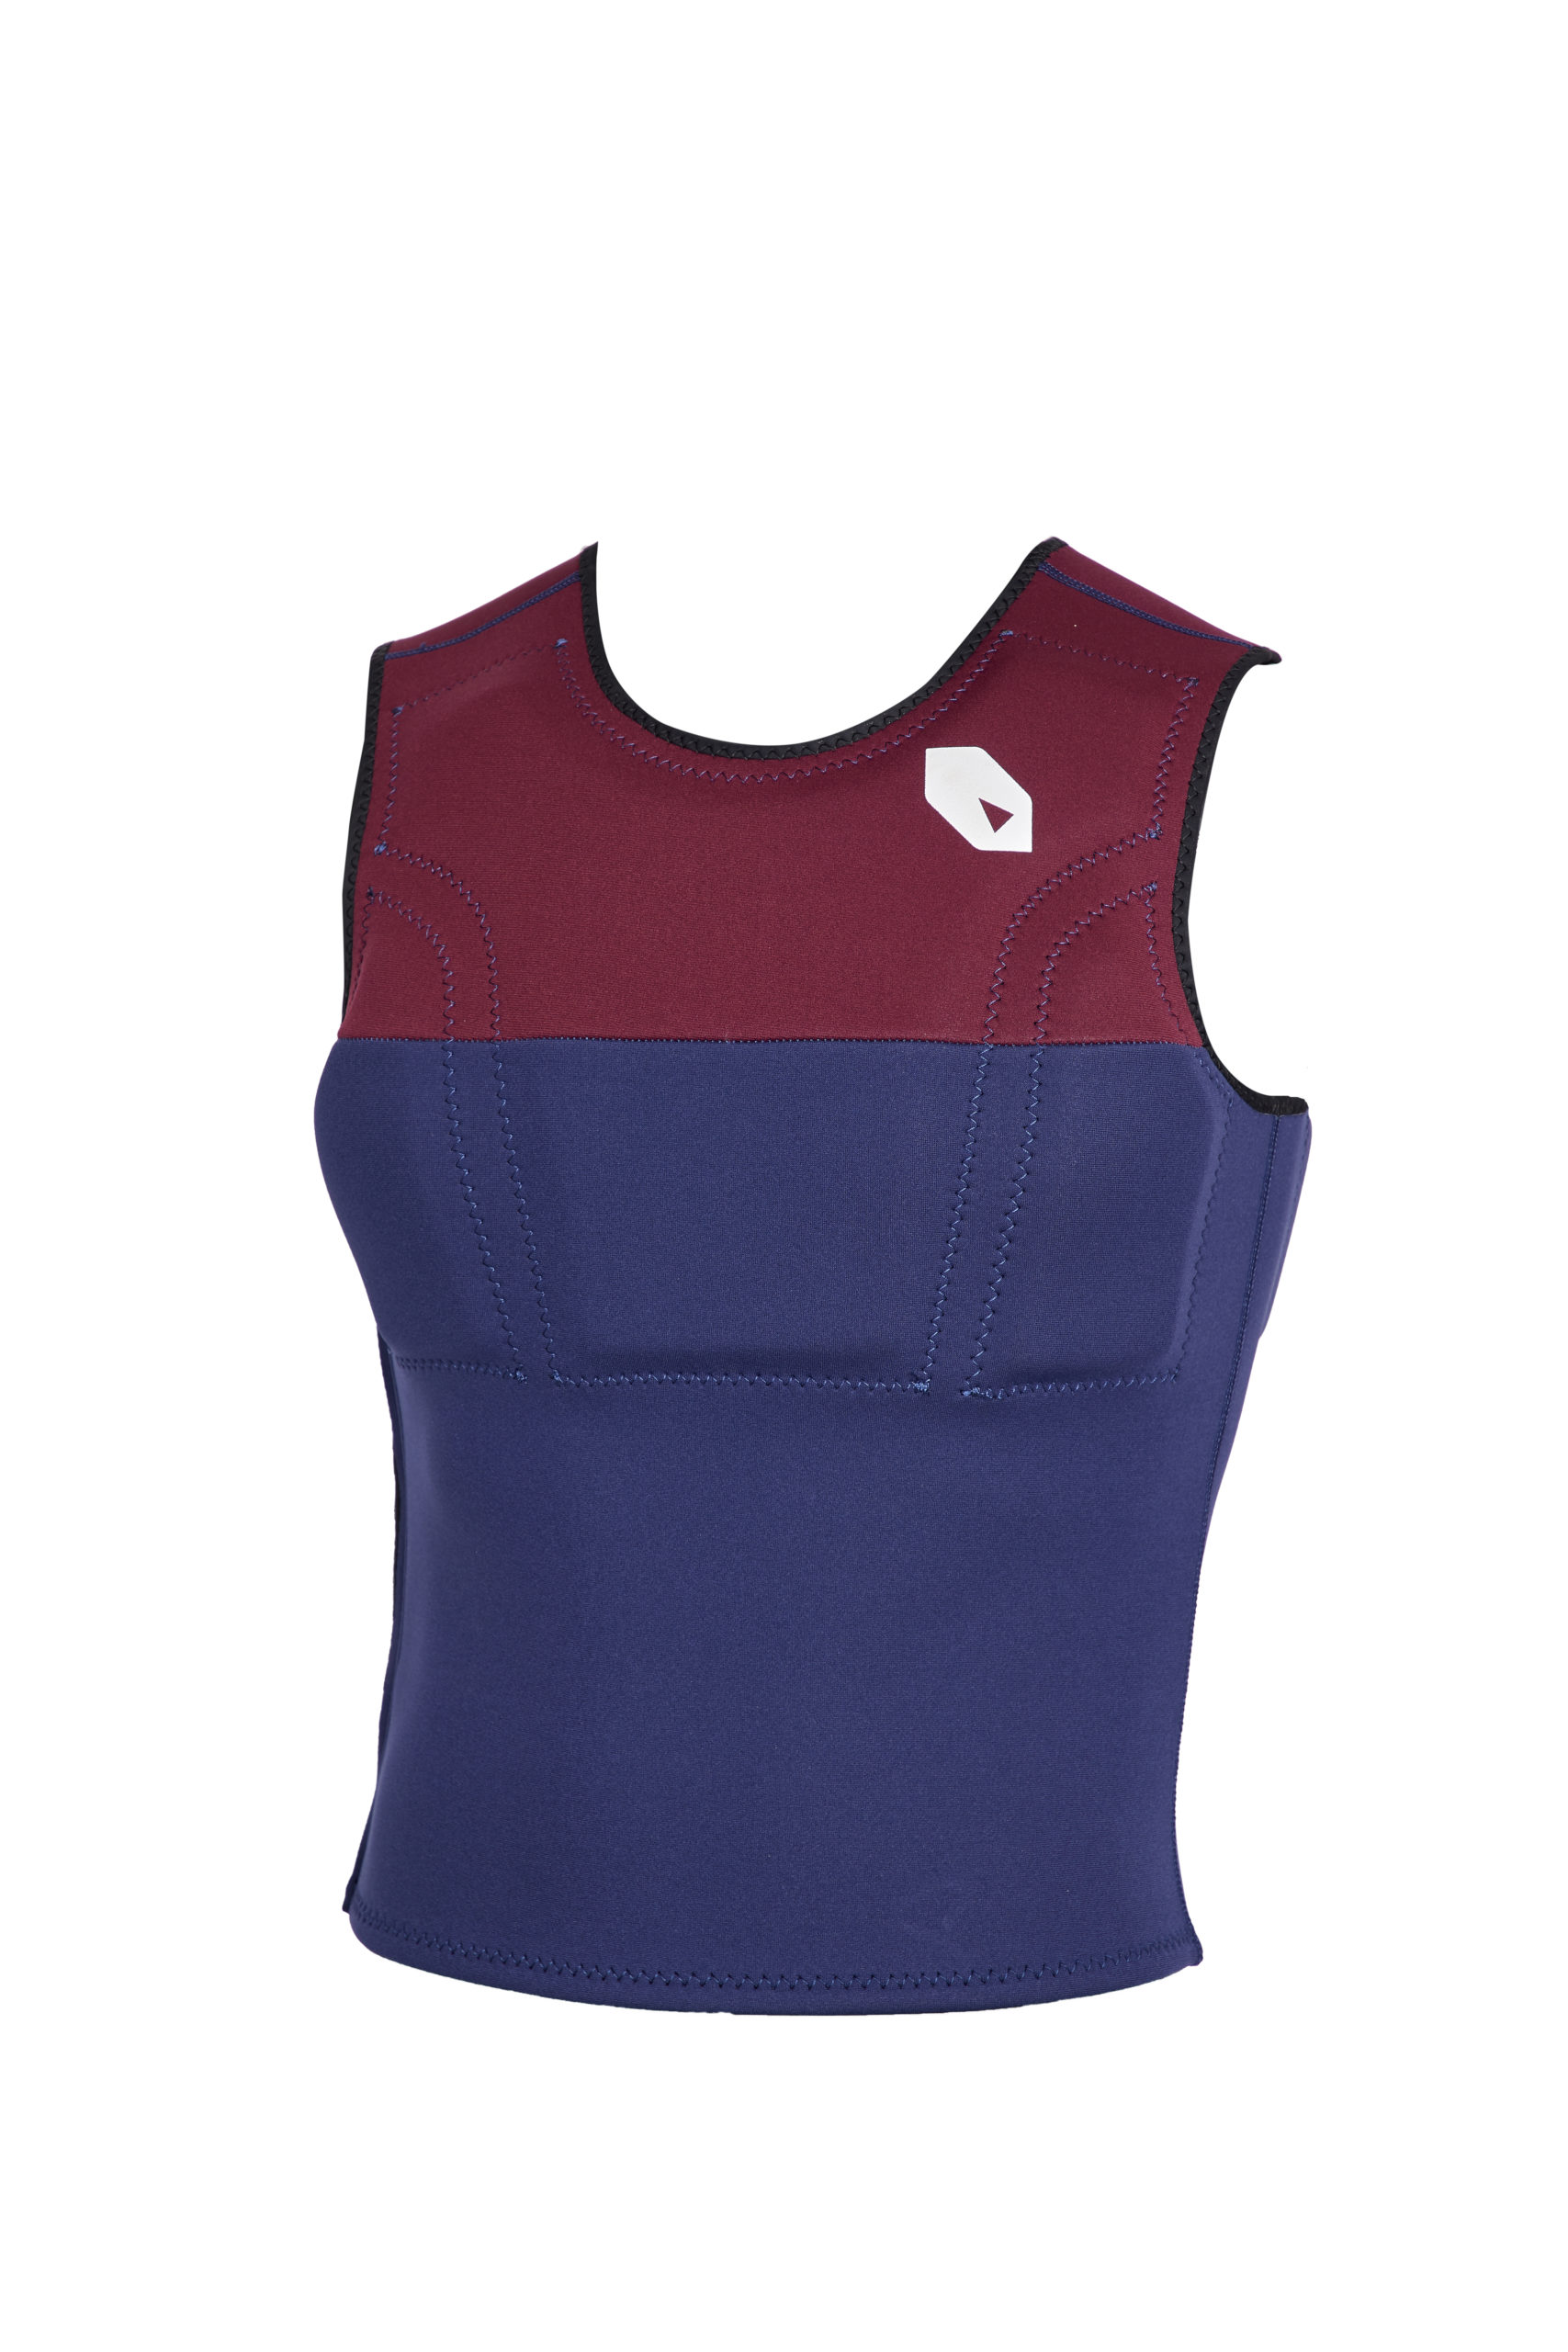 Image of   SUP - Impact vest